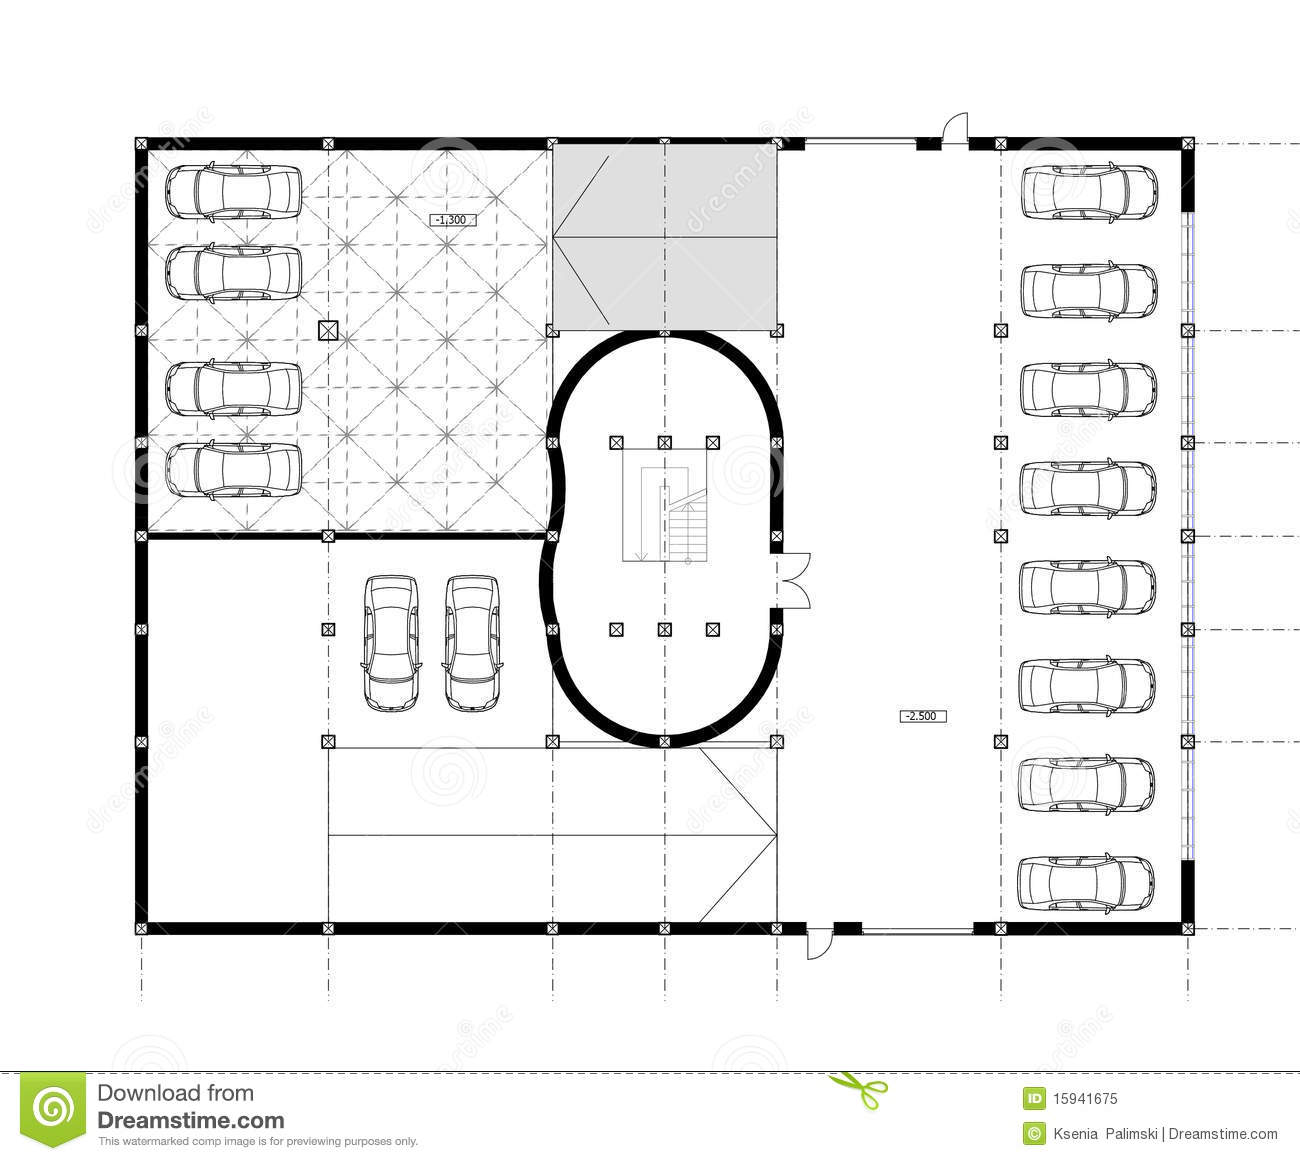 Architecture Drawing Plan architectural cad drawing stock image - image: 36028711